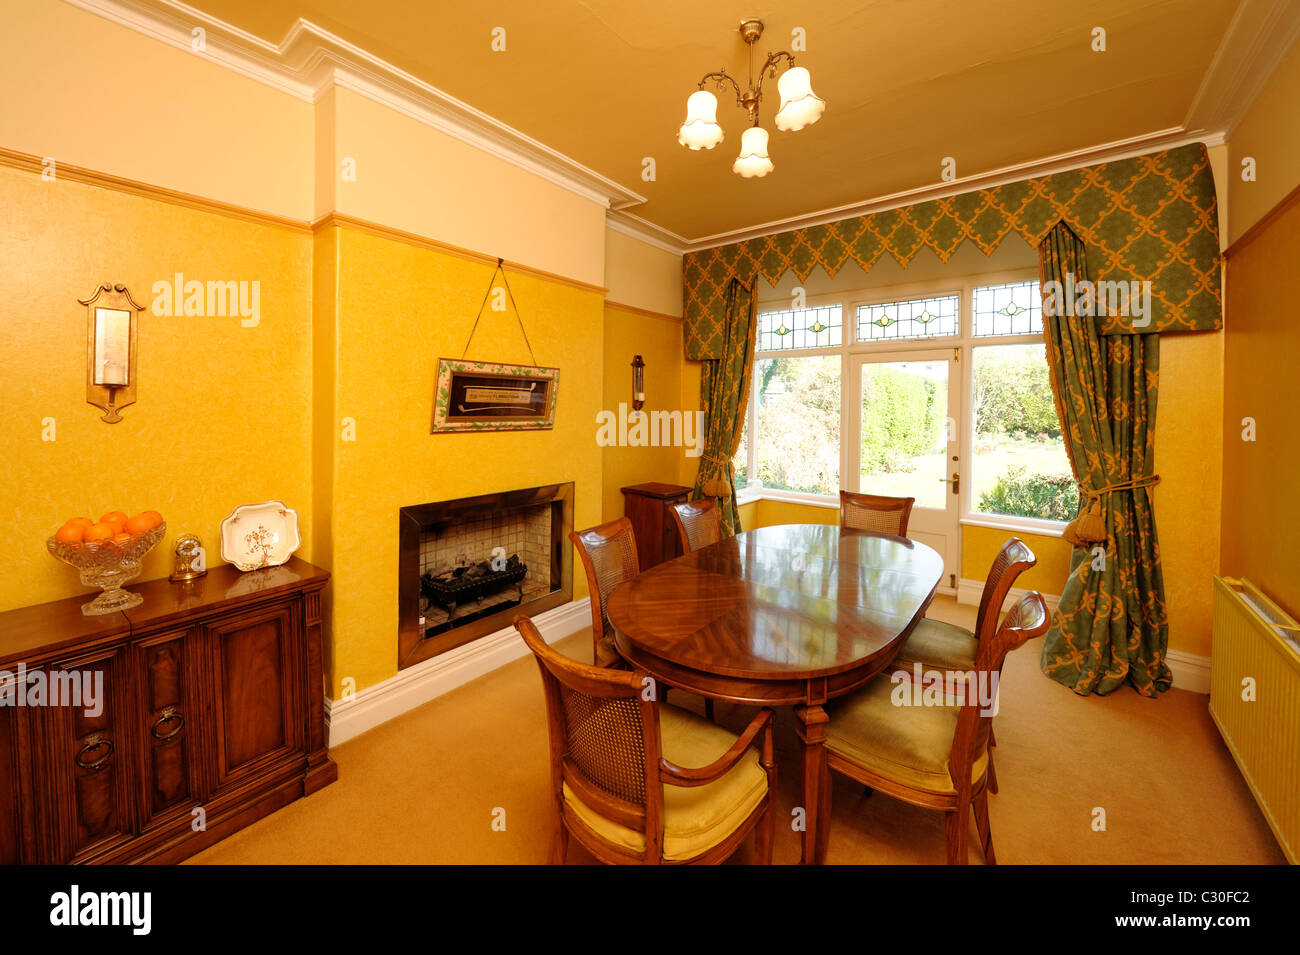 Period dining room - Stock Image